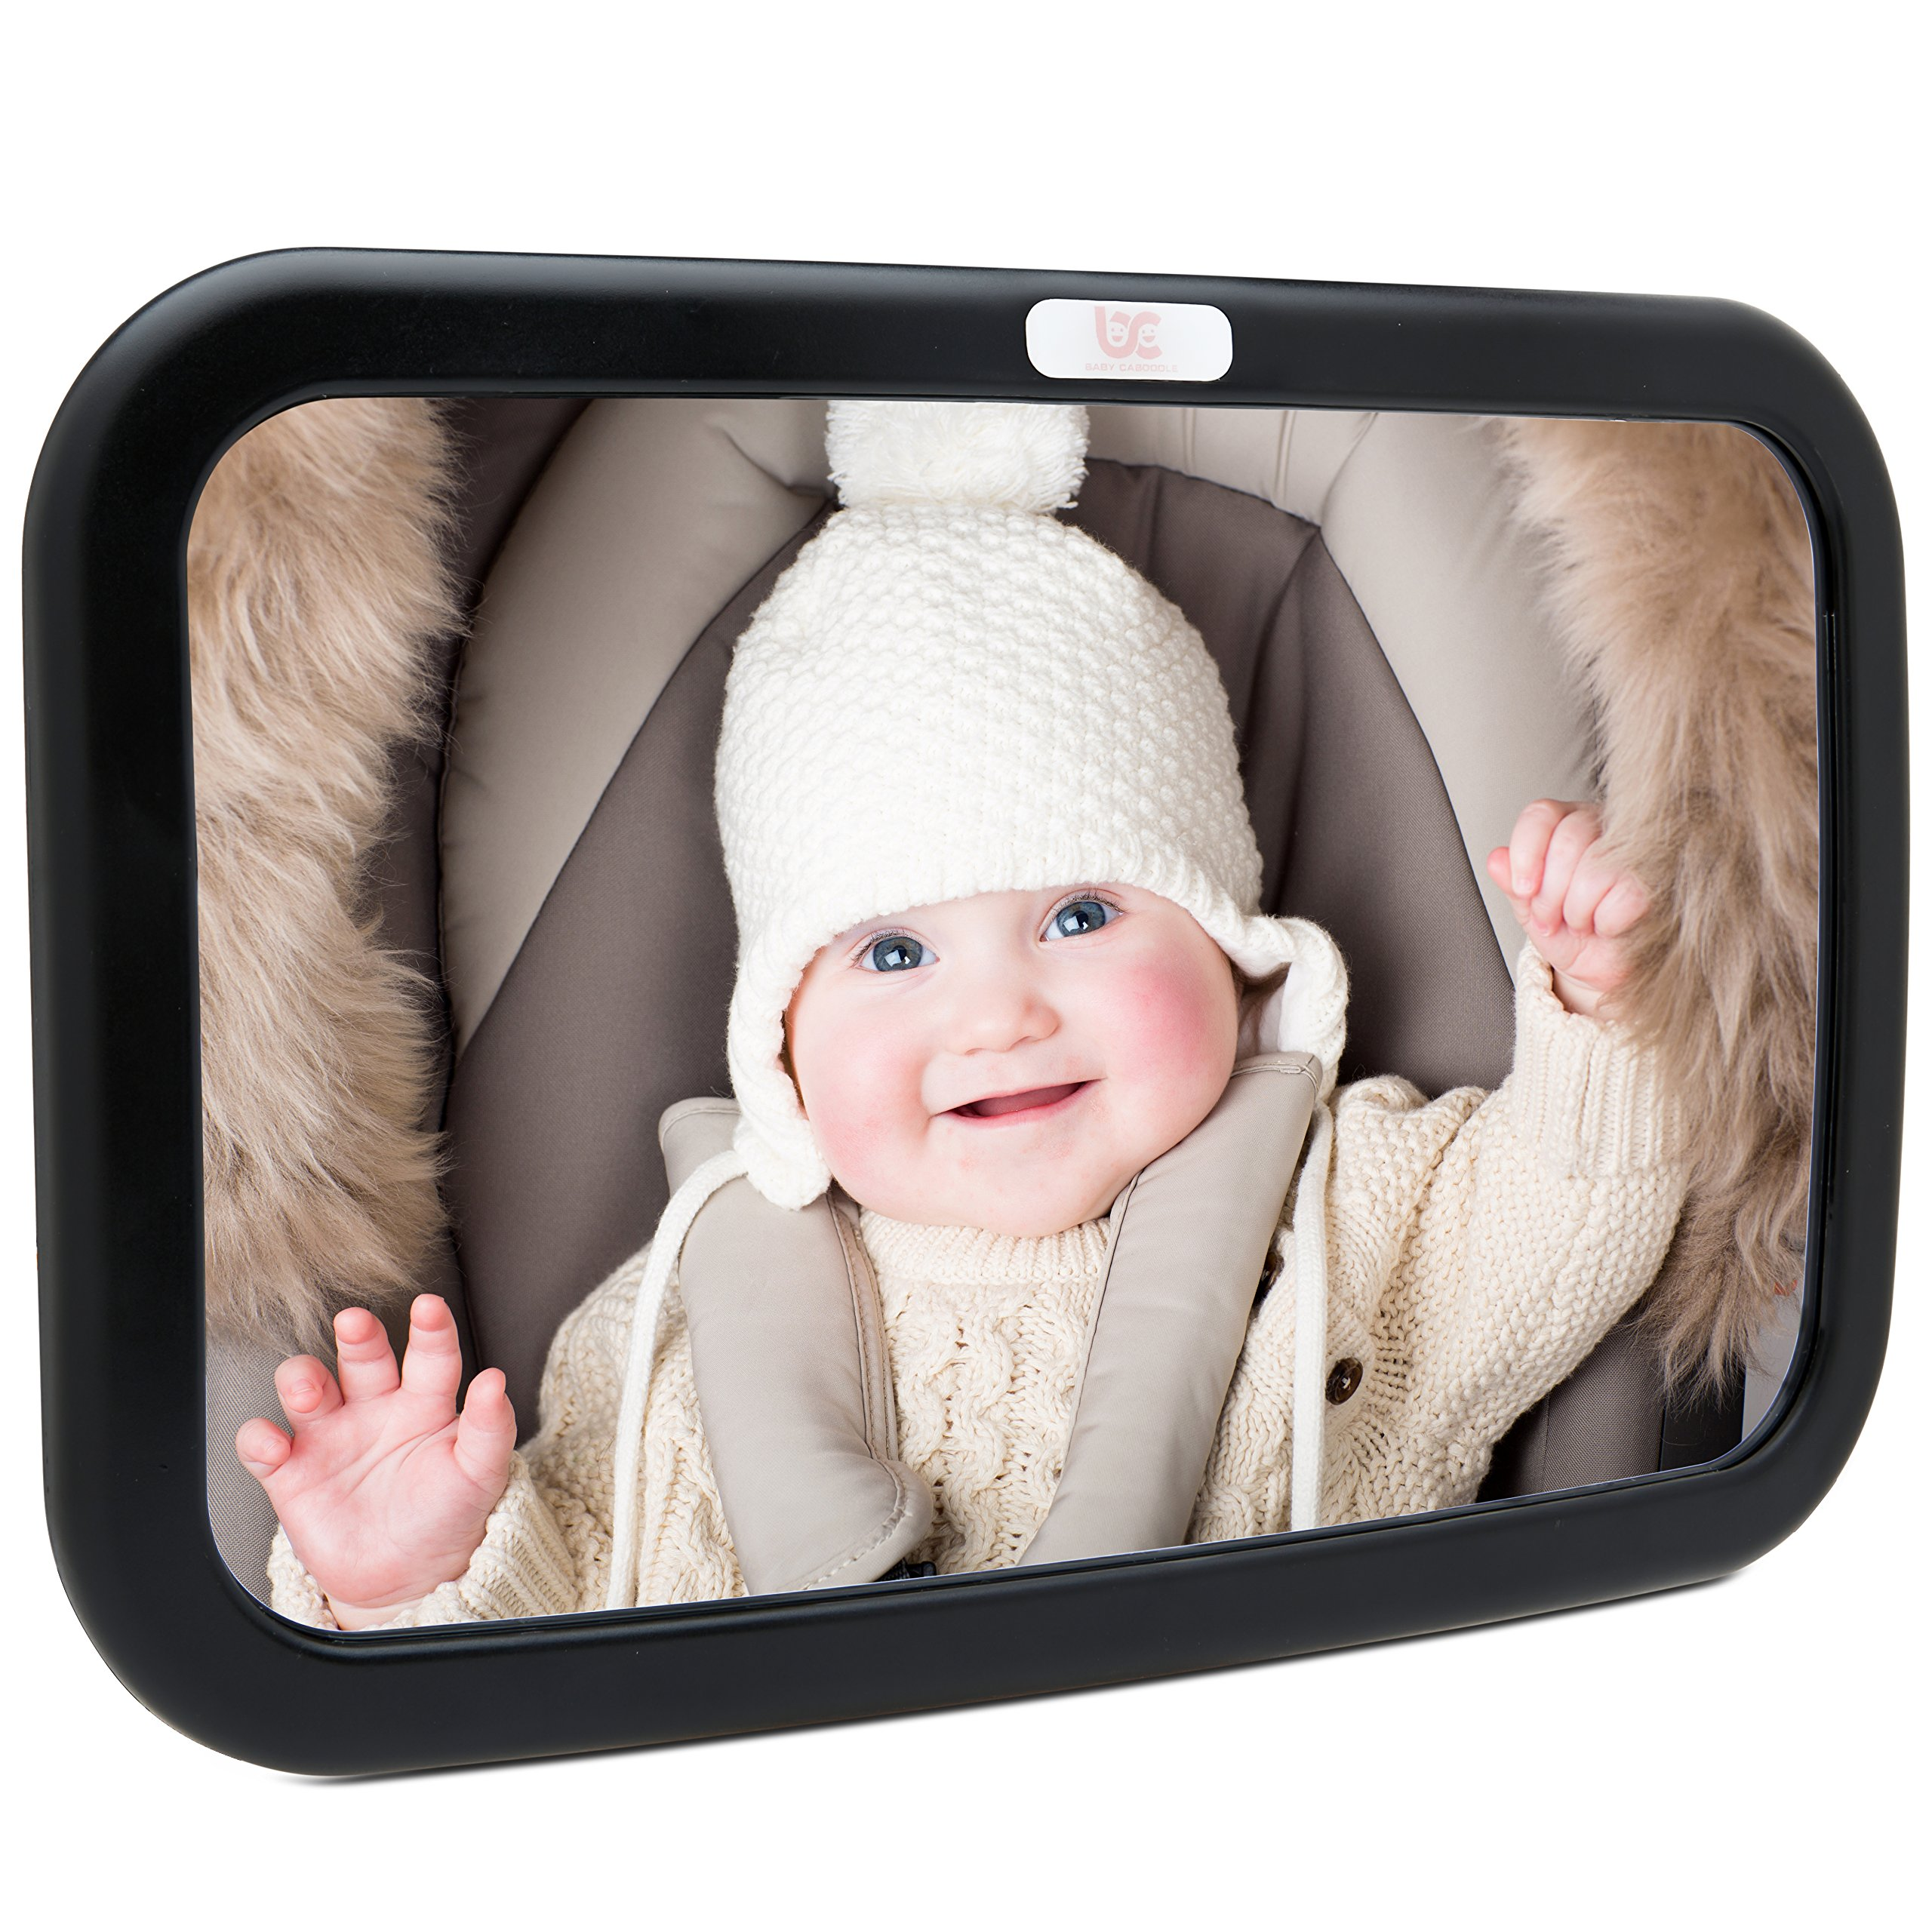 Baby Car Mirror, Car Seat Mirror, Safely Monitor Infant Child in Rear Facing Car Seat, Wide View Shatterproof Adjustable Acrylic 360°for Backseat by Baby Caboodle